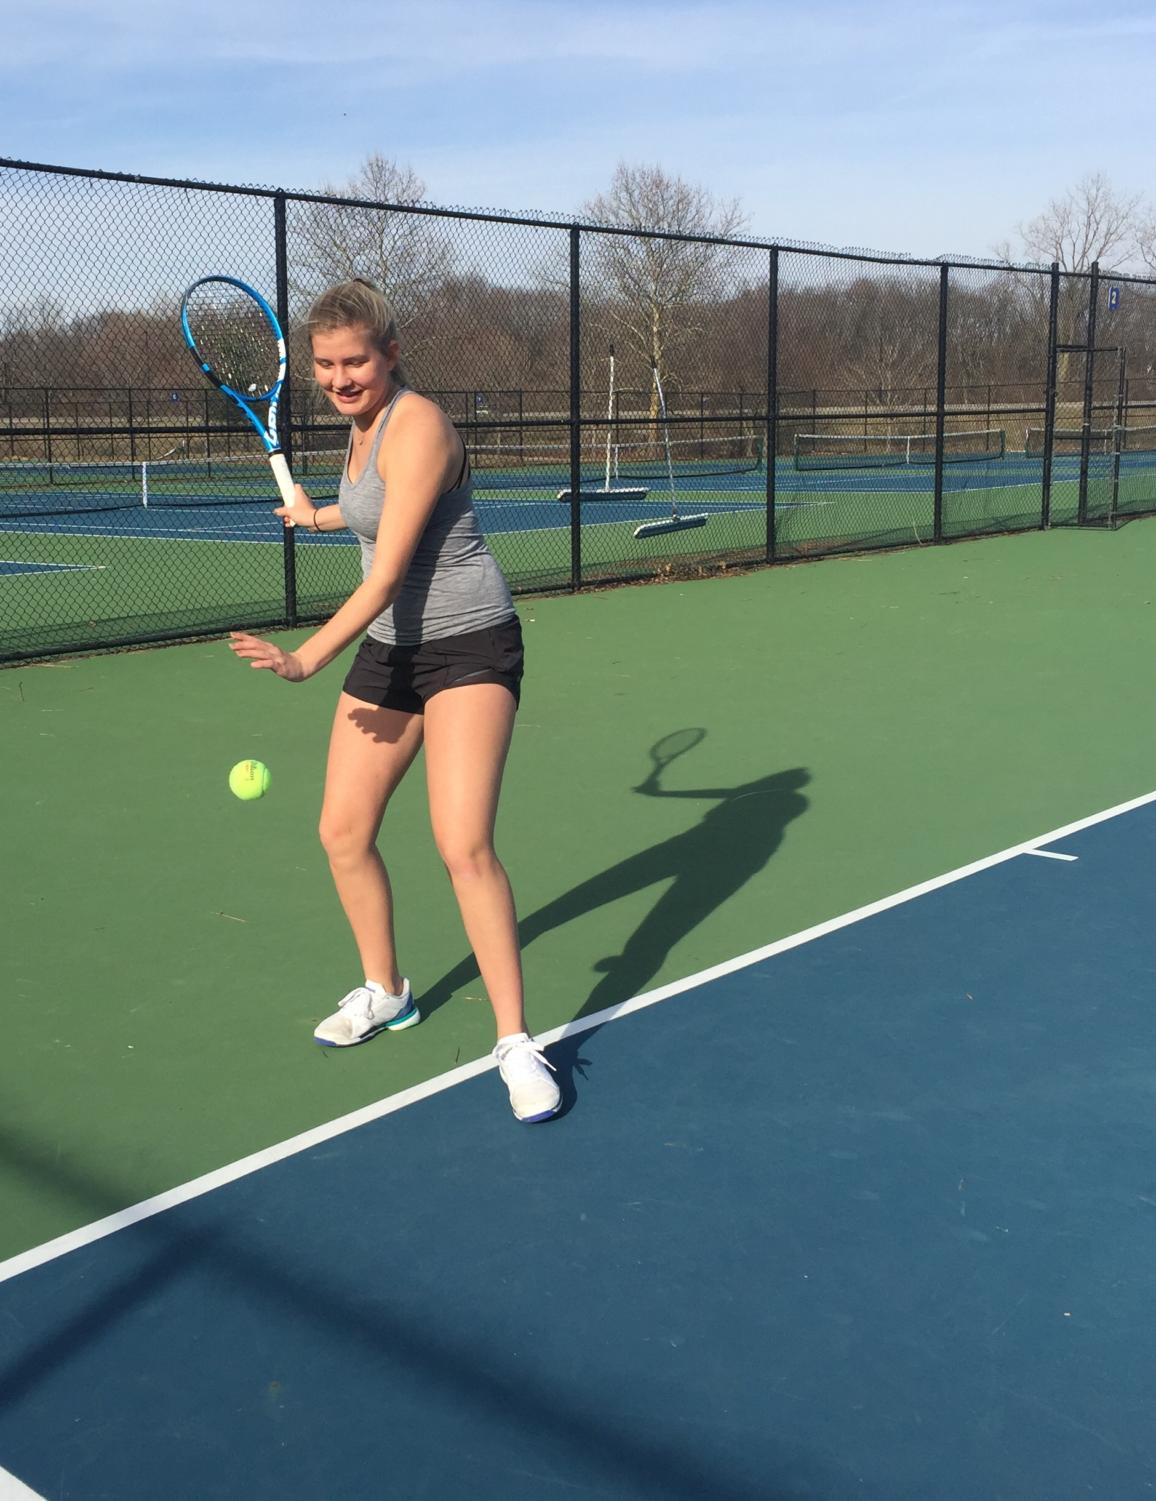 Windy+Wednesday%3A%0ALauren+Littell%2C+varsity+tennis+player+and+freshman%2C+hits+a+forehand+at+the+last+practice+before+spring+break+on+Mar.+27.+The+team+has+prepared+to+play+their+first+official+match+on+Apr.+11+against+Sacred+Heart+High+School.+